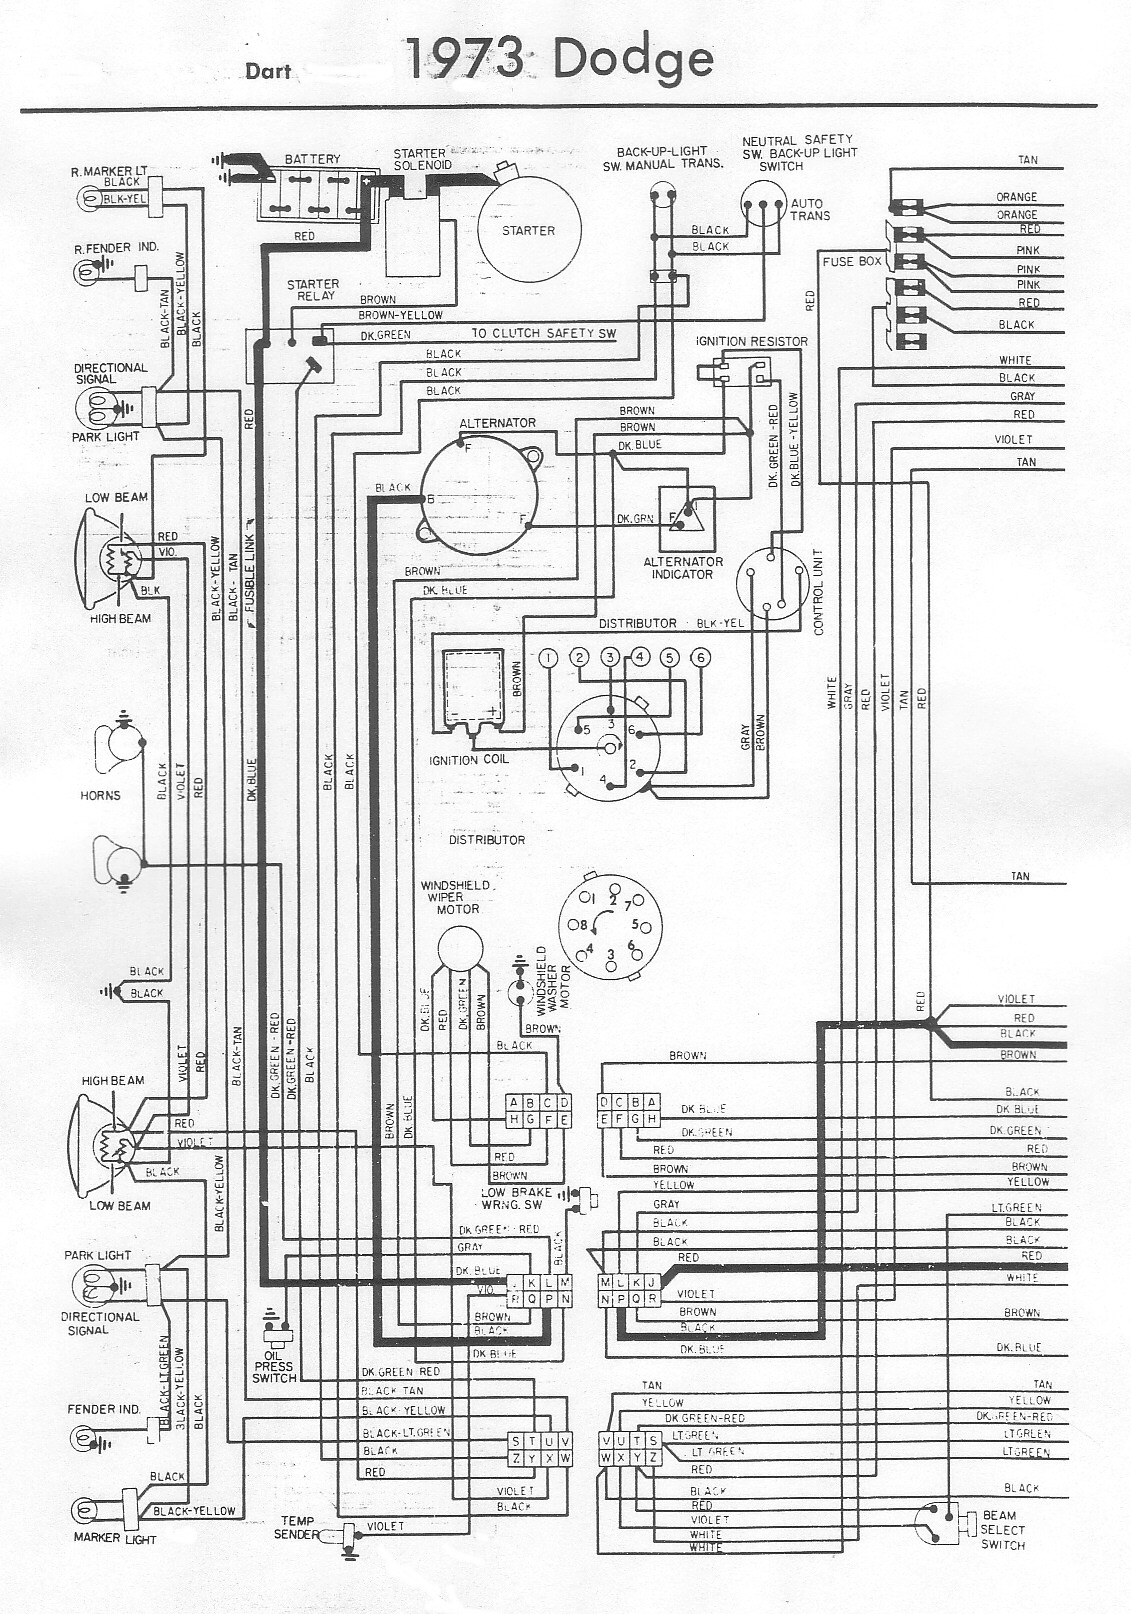 [DIAGRAM_09CH]  MM_0486] 1966 Dodge Coronet 81 2Quot X 11Quot Color Wiring Diagram  Schematic Wiring | 1966 Barracuda Dash Wiring Diagram Schematic |  | Hendil Phil Cajos Hendil Mohammedshrine Librar Wiring 101